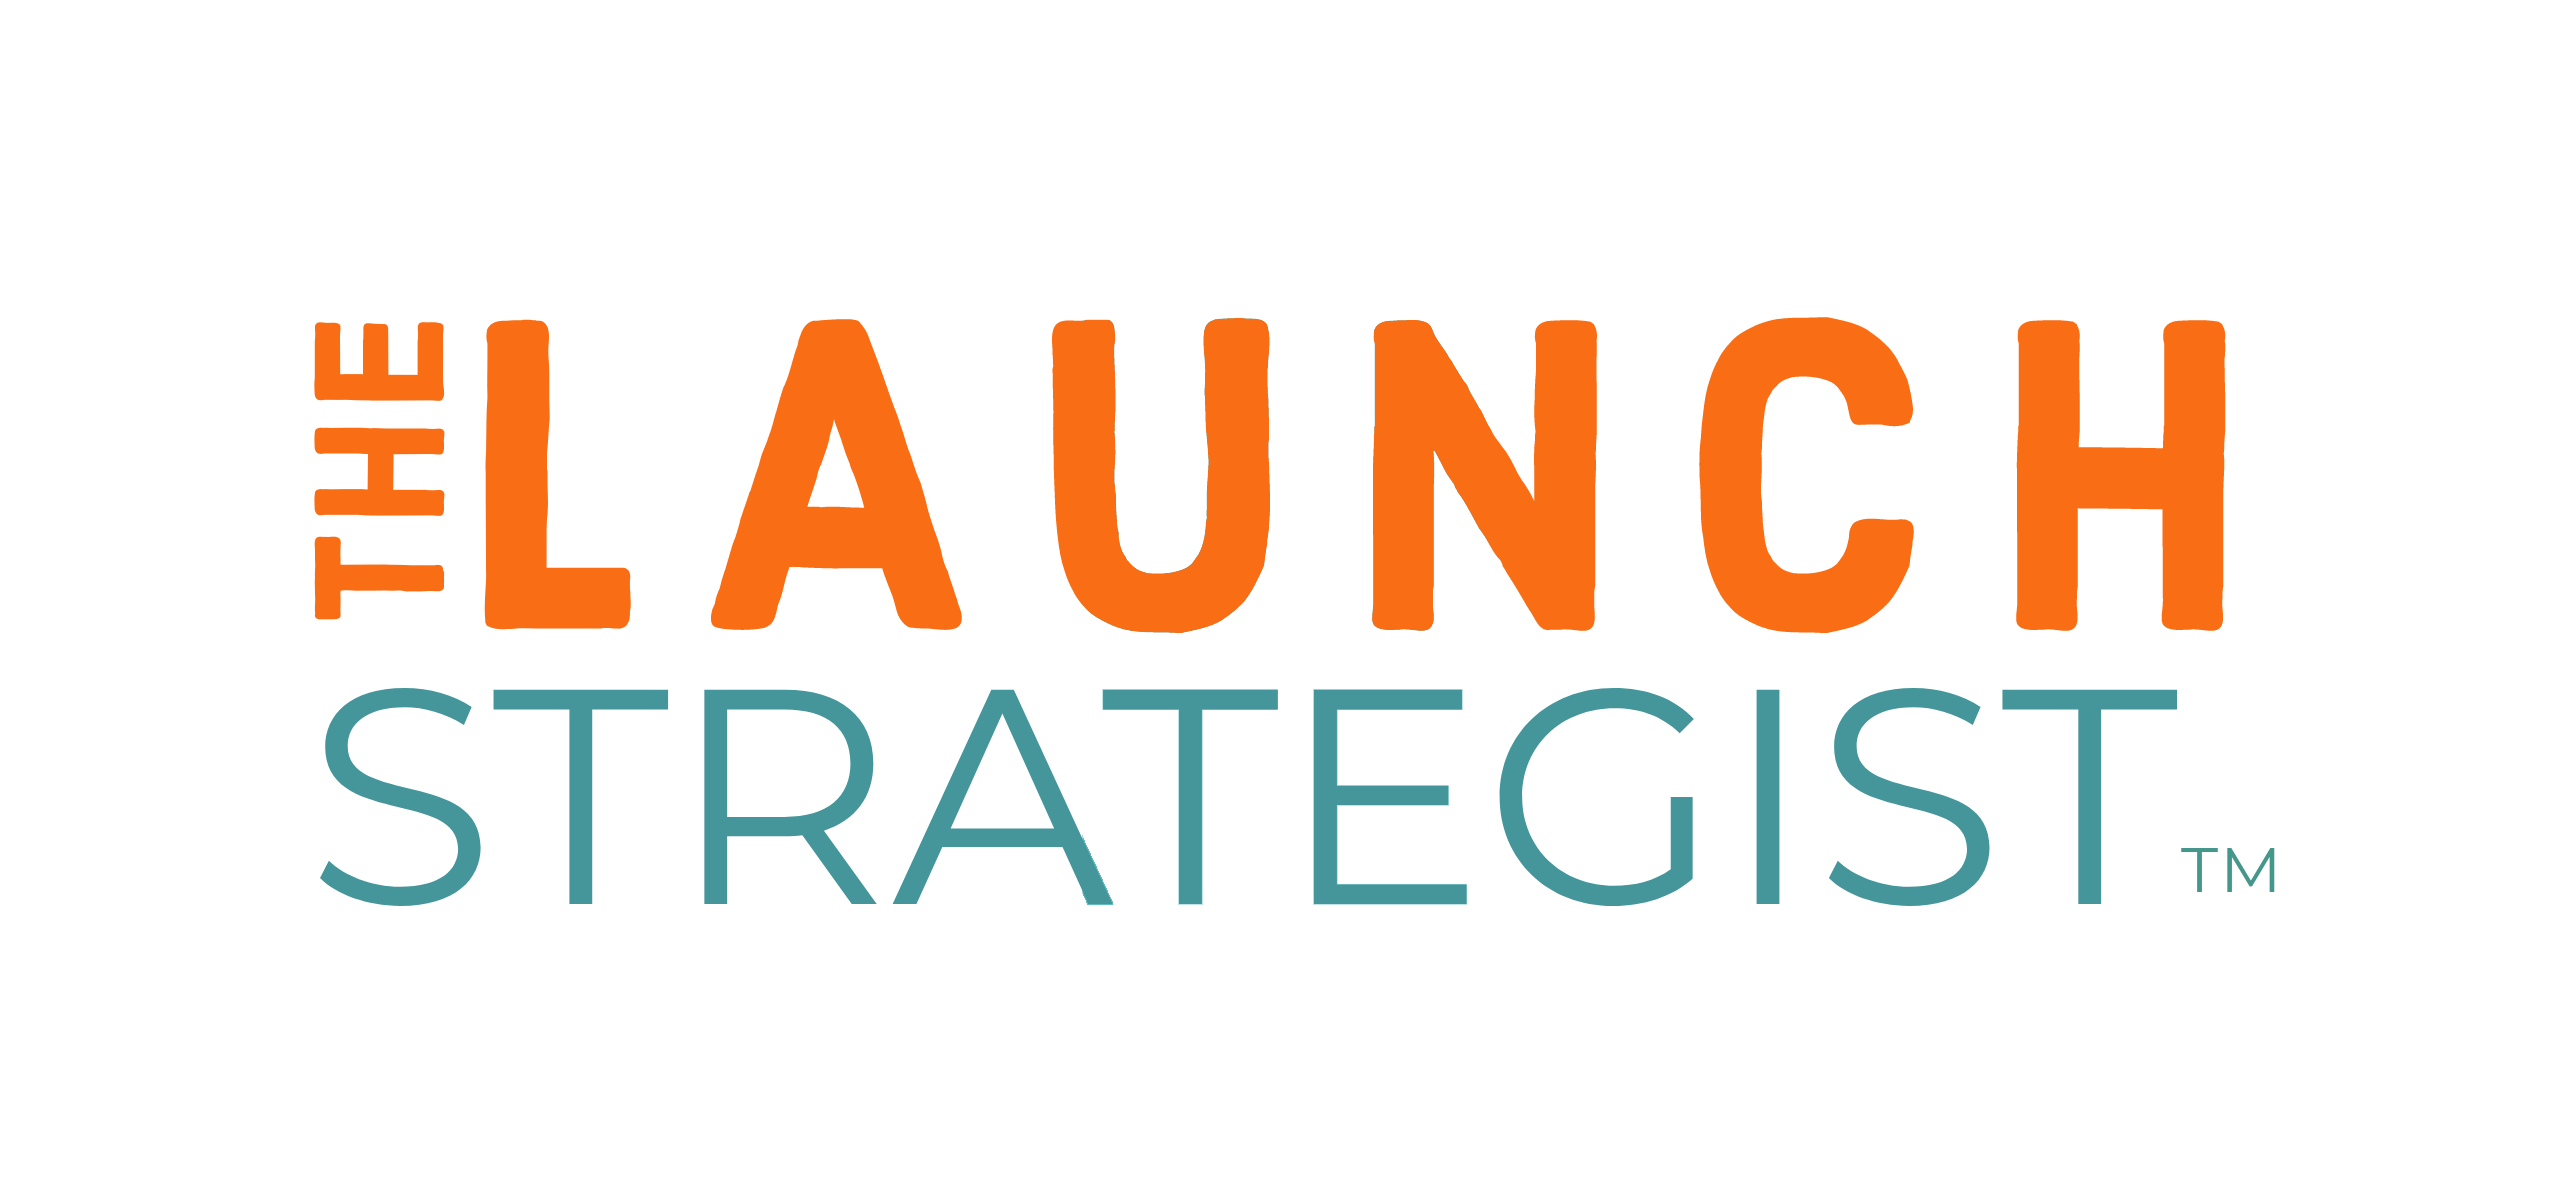 The Launch Strategist podcast